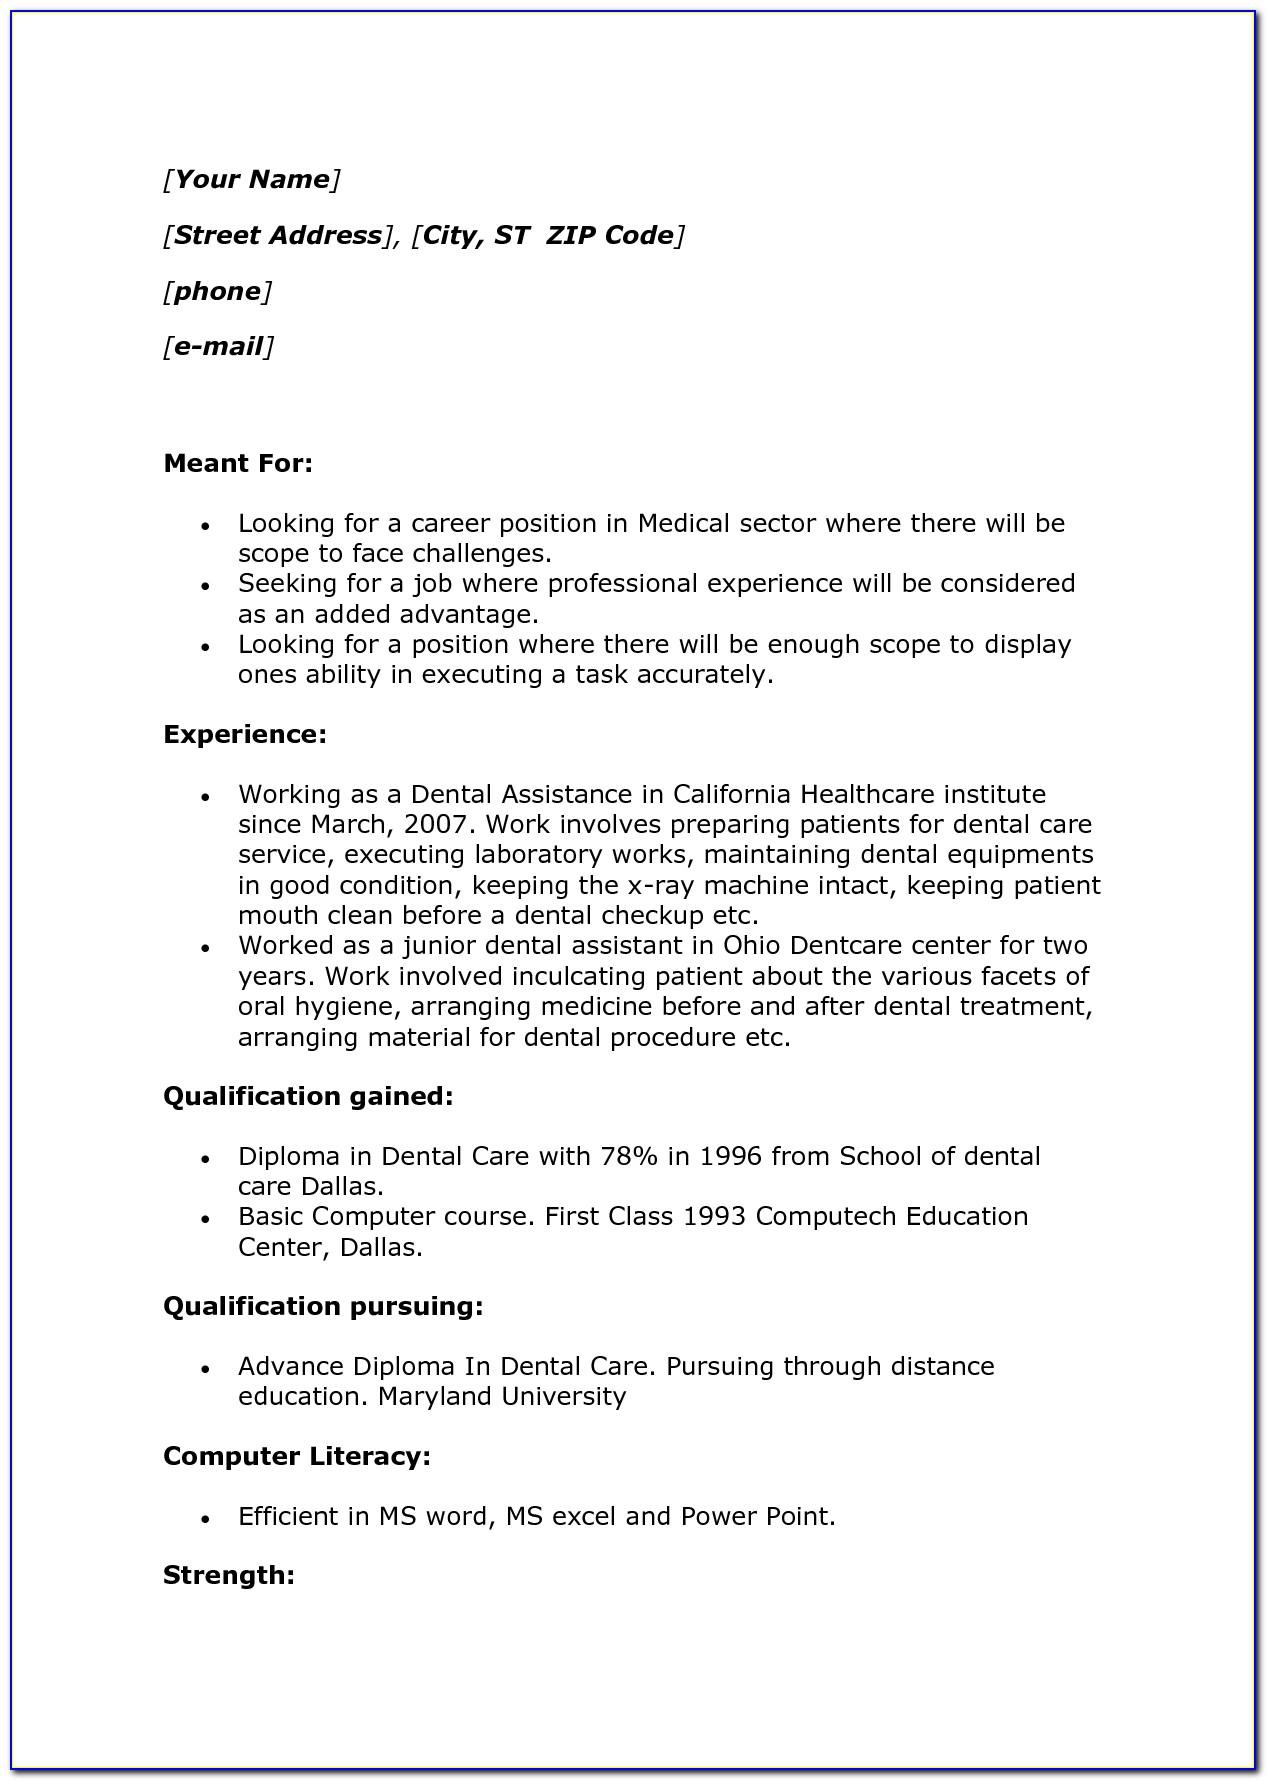 Sample Restaurant Server Resume Template